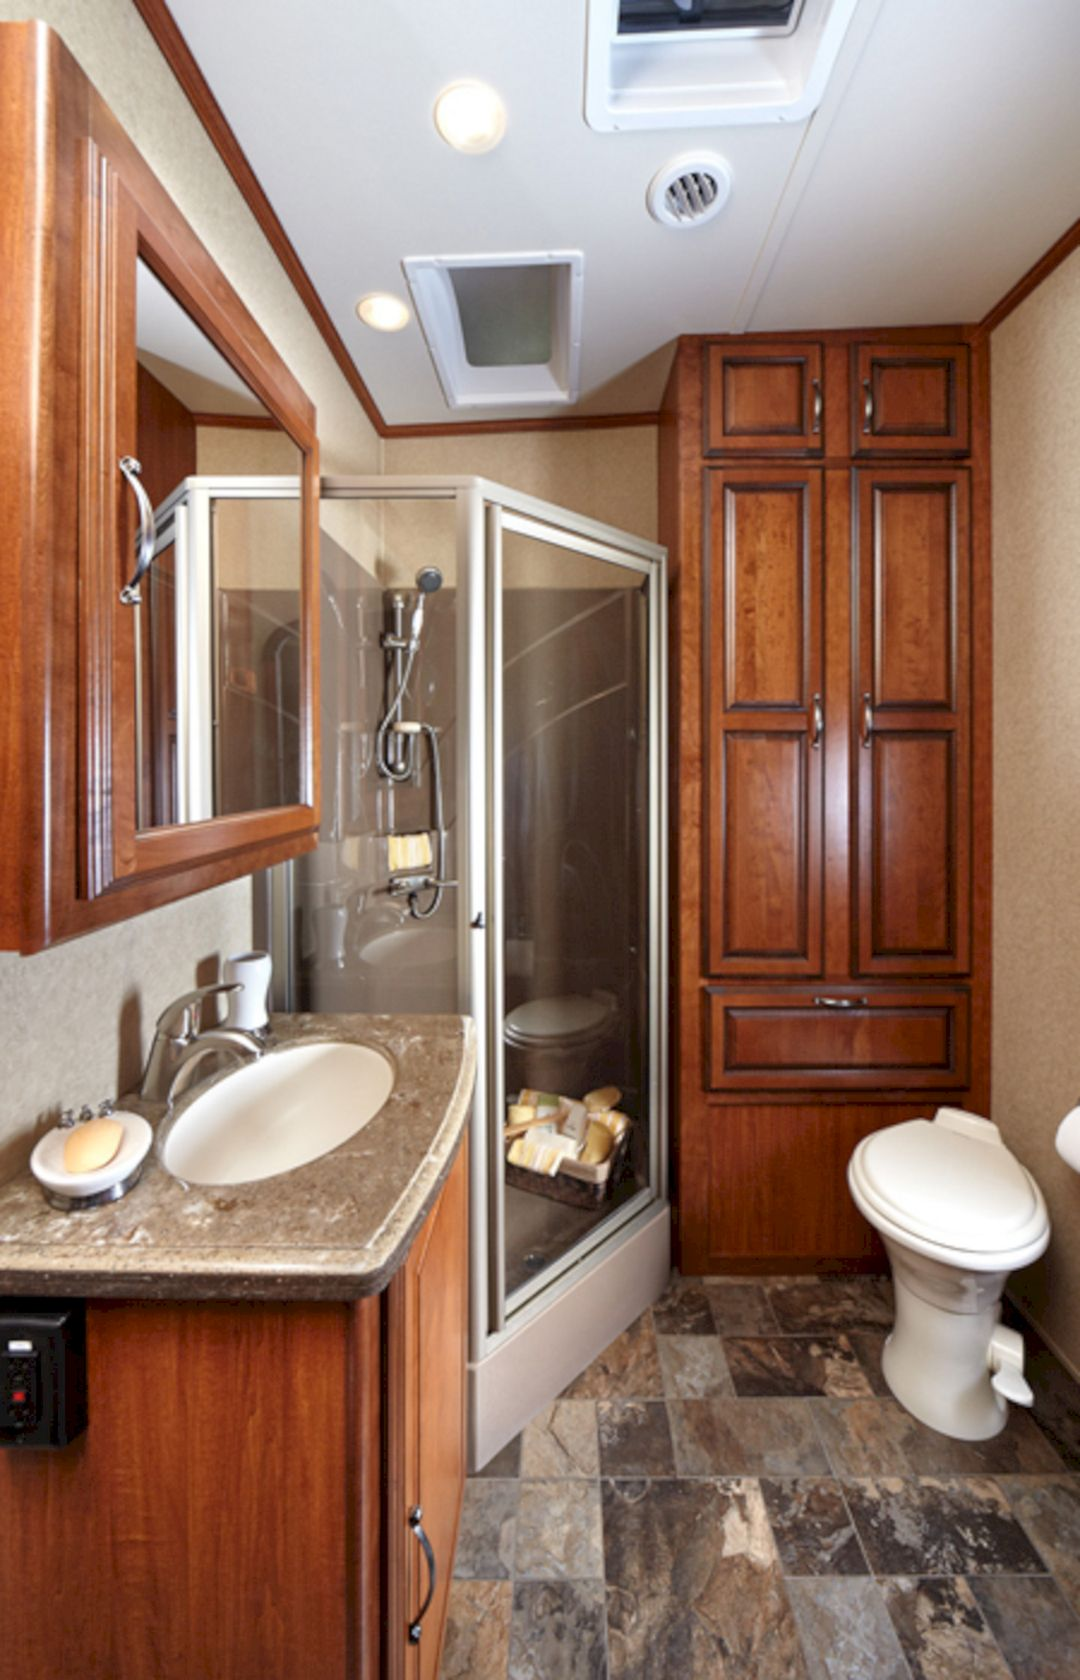 Why Does my RV toilet smell When I flush?